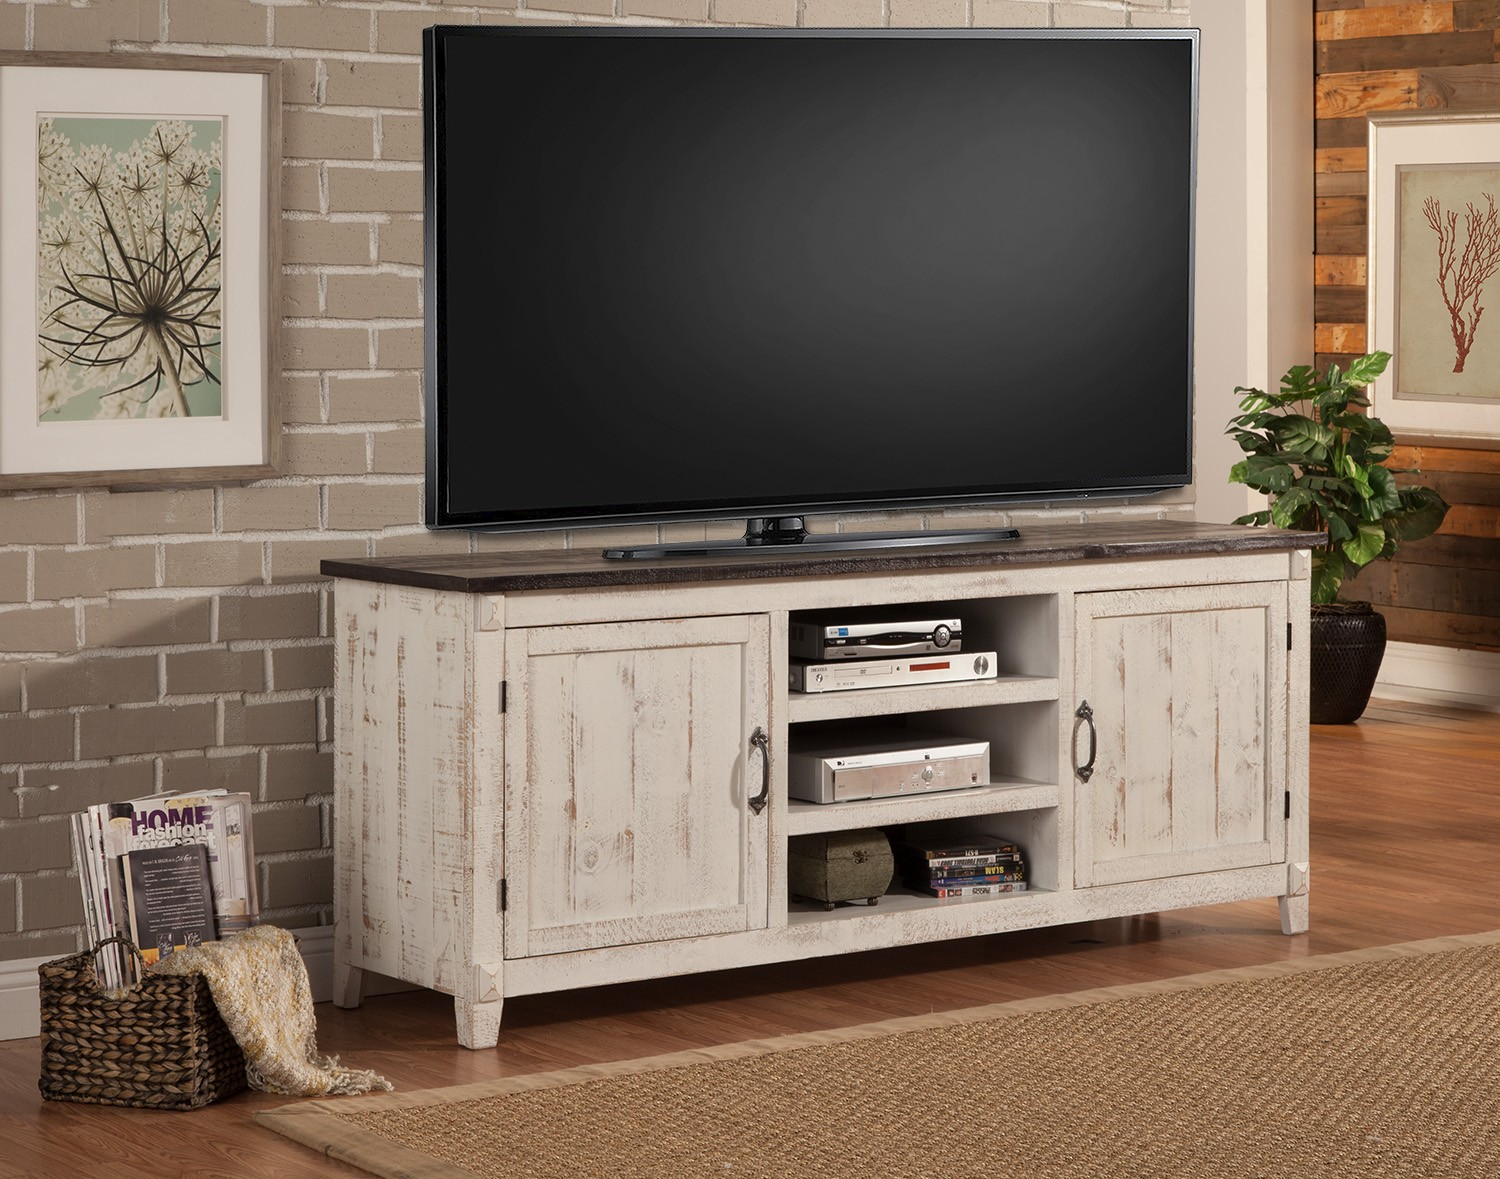 Parker House Mesa 76-inch Console - 2 Tone - Antique White